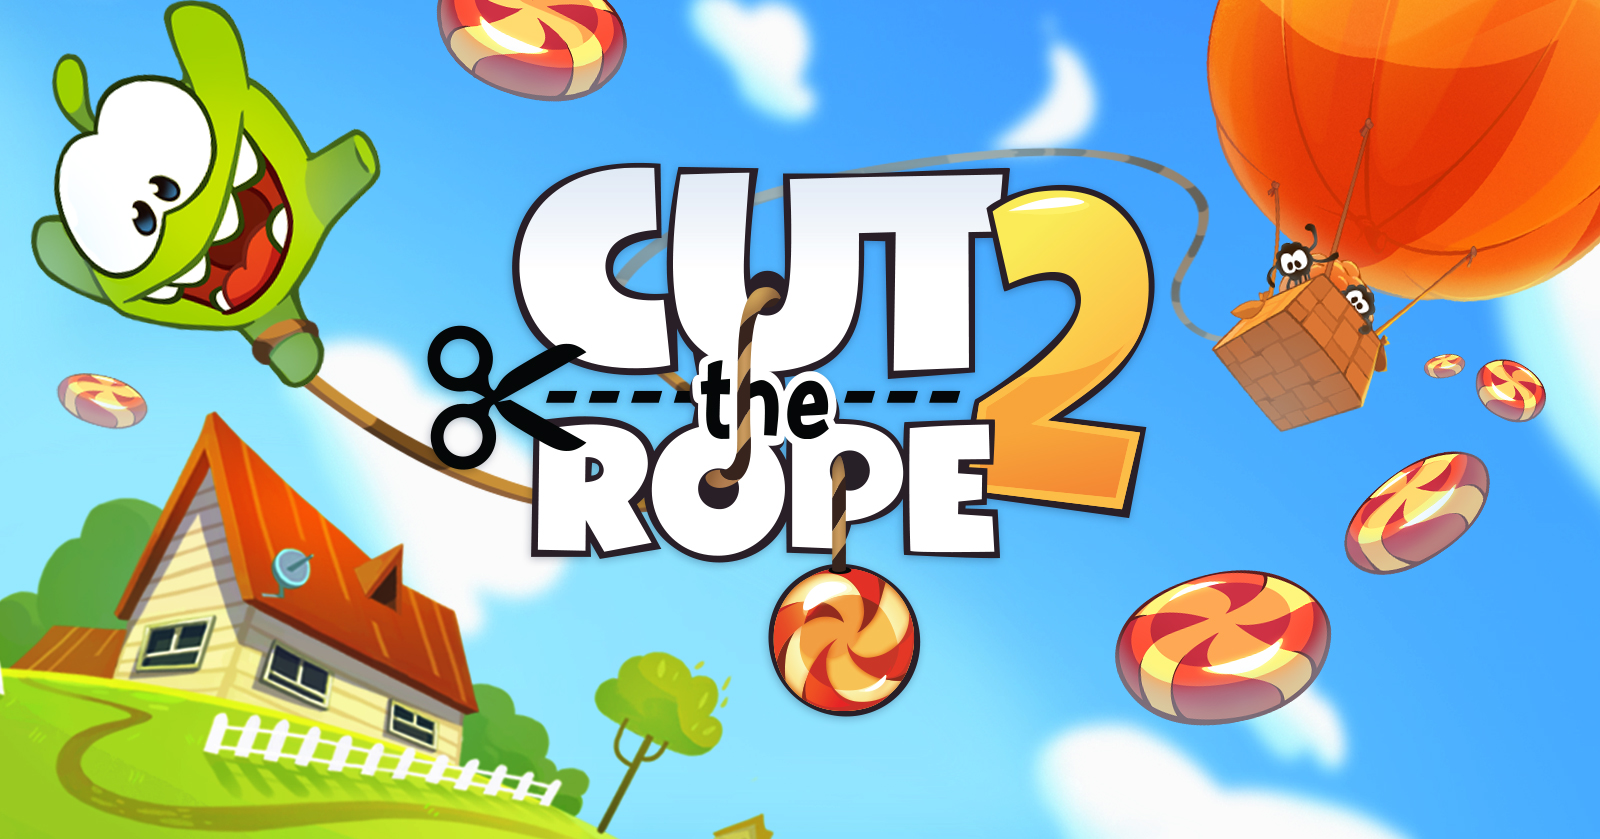 a banner from cut the rope 2